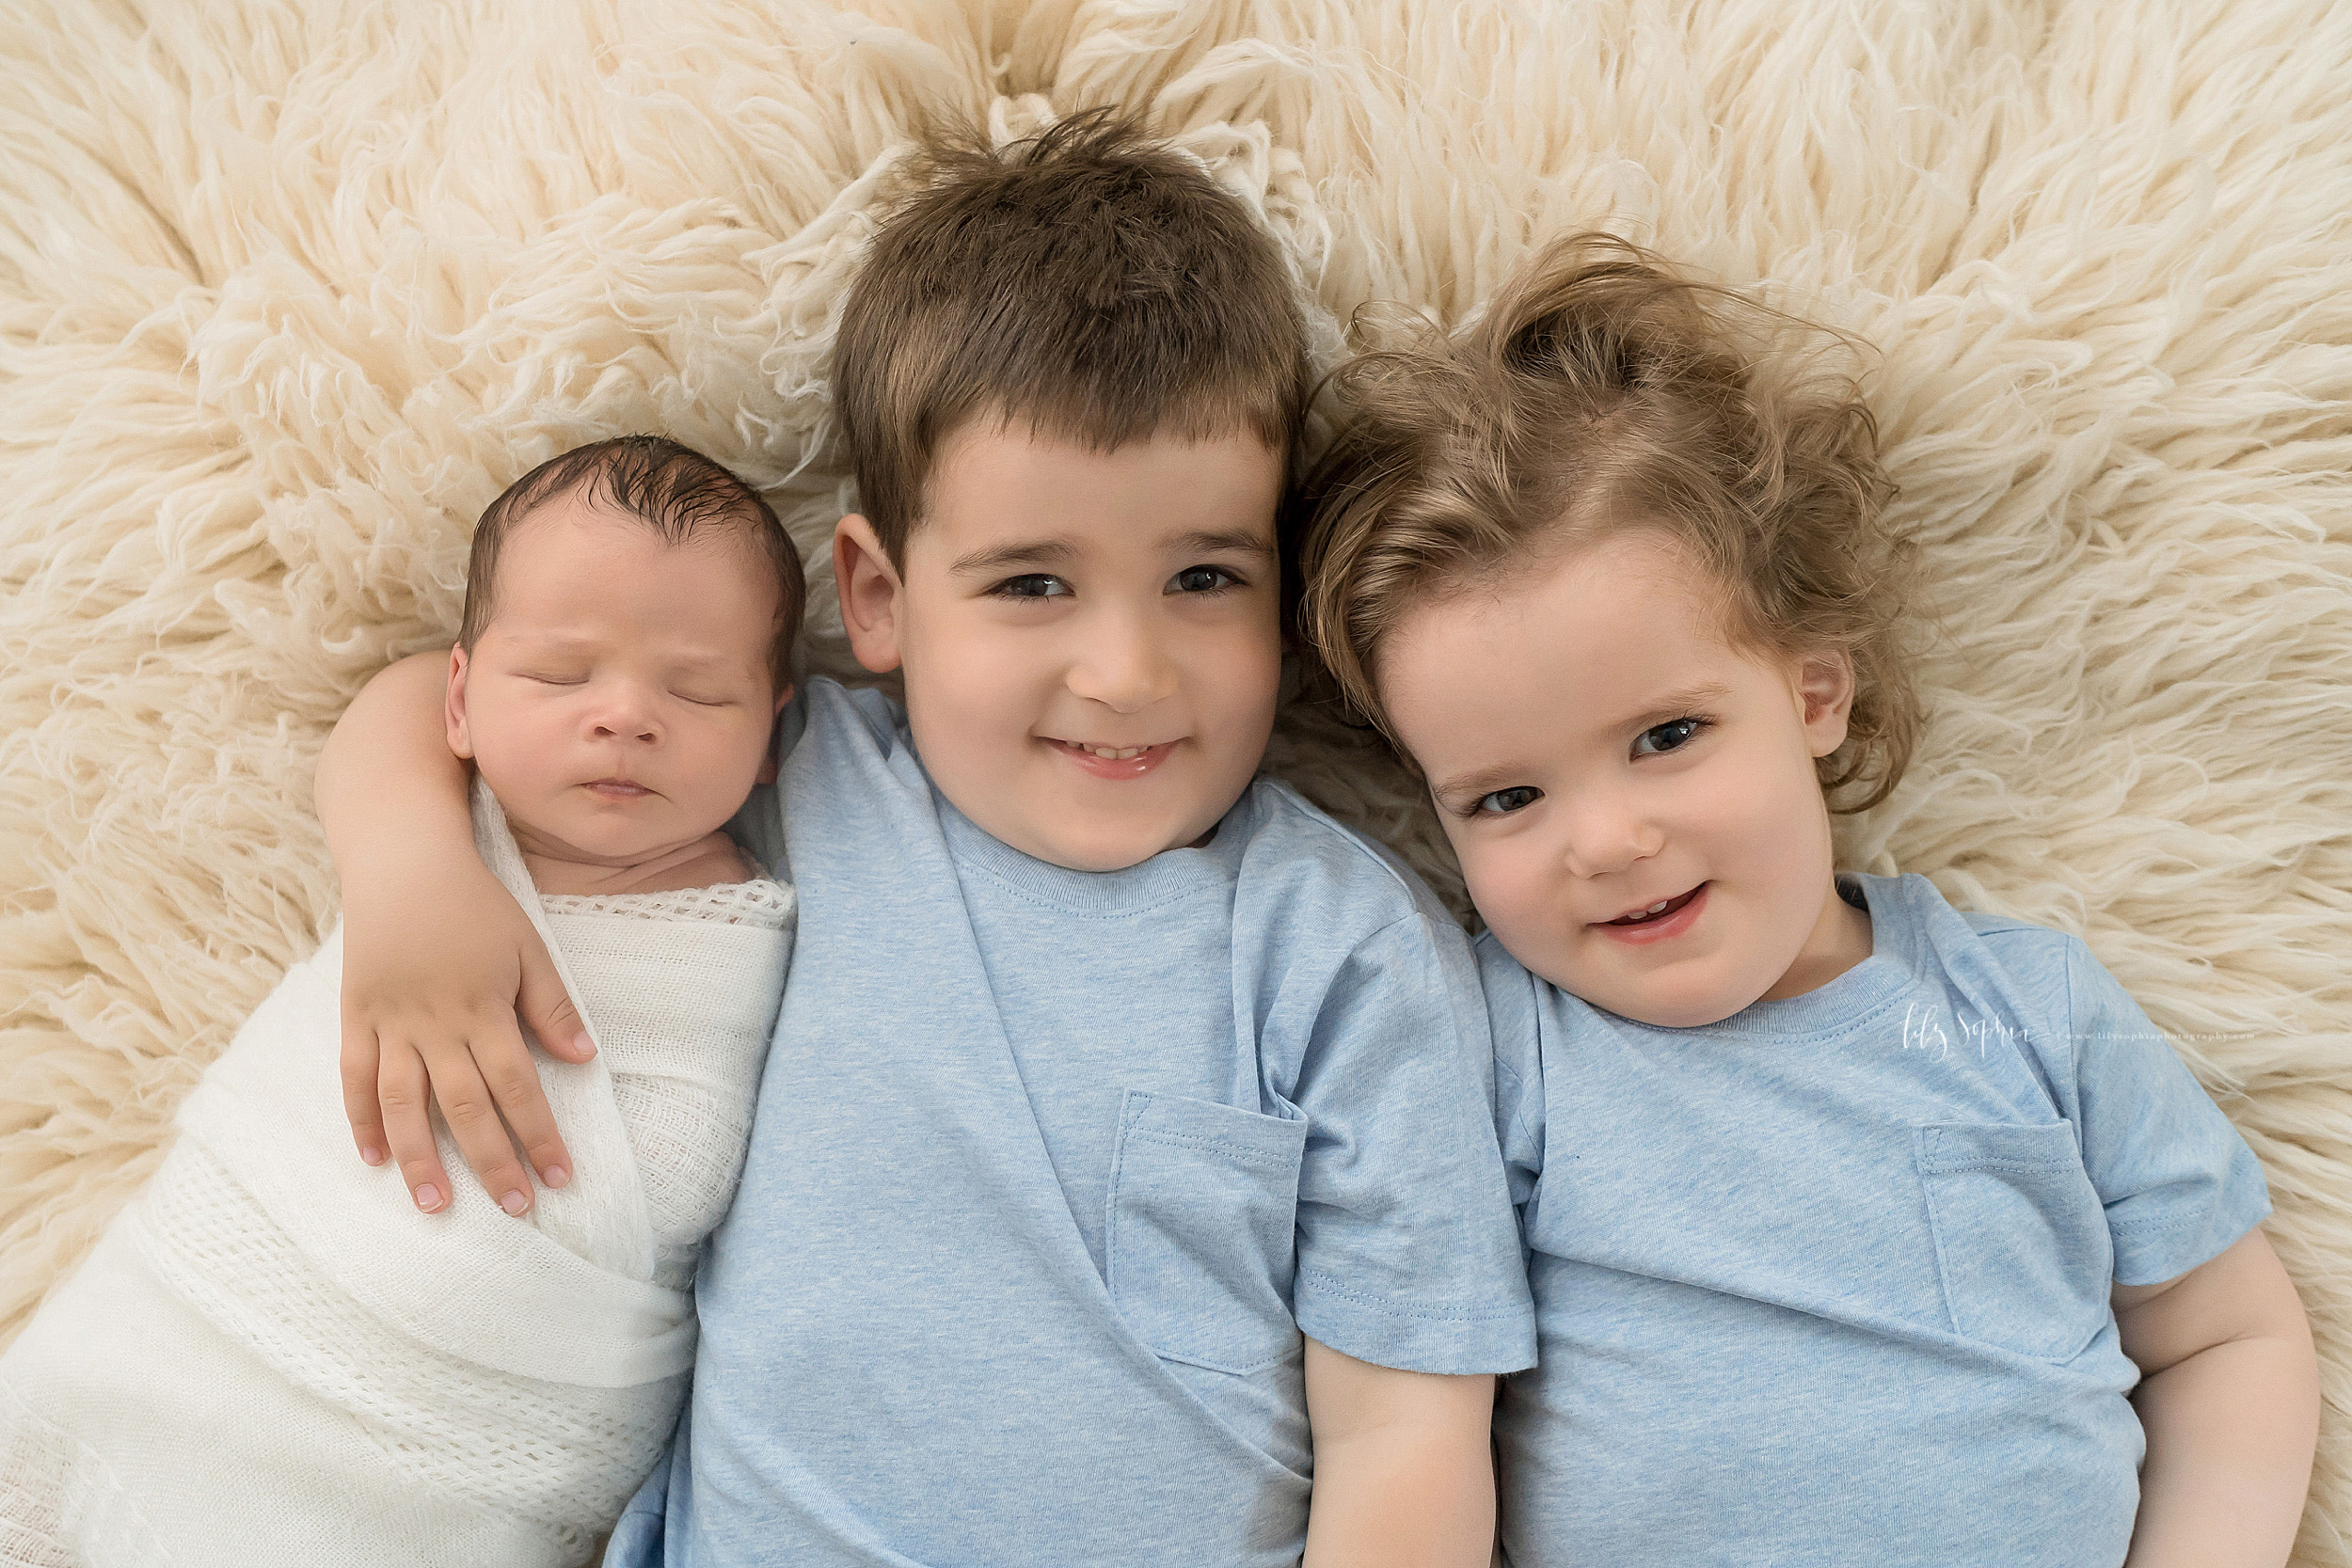 Photo of a newborn with his older brothers. The three brothers are laying on their backs on a tan fur blanket. The infant is wrapped to his chin in a soft white swaddle blanket and is on the left side of the photo. His brown haired, brown-eyed brother has his hand around his shoulder as he smiles and is in the middle of the photo. The younger blond haired brother is on the right of the photo  The older brothers are wearing light blue T-shirts with single pocket on the left hand side of the shirt.